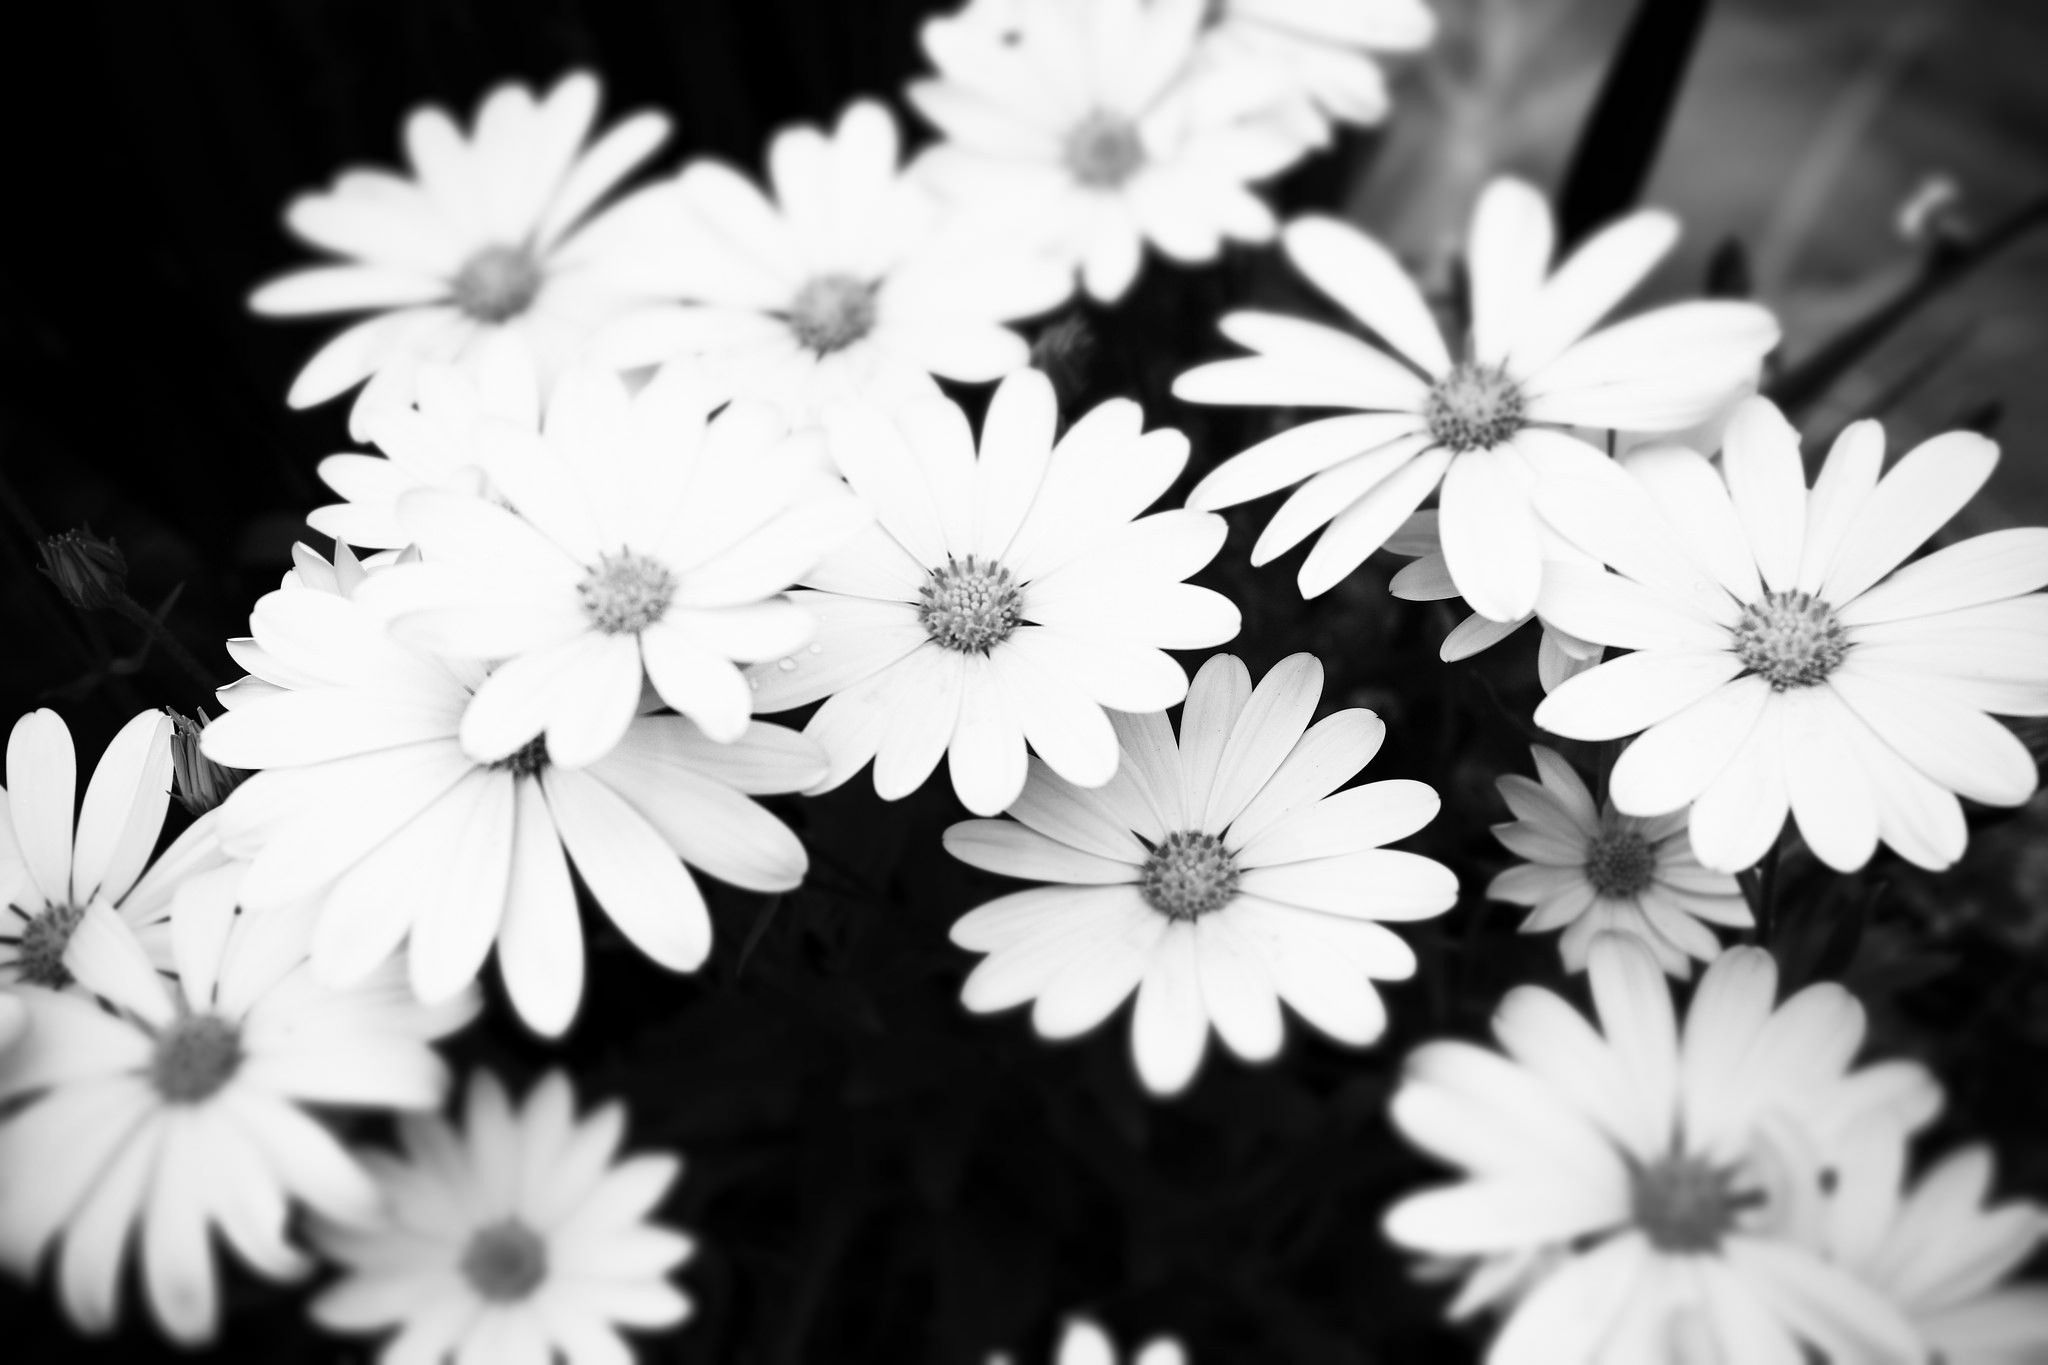 Black And White Aesthetic Flower Wallpapers Top Free Black And